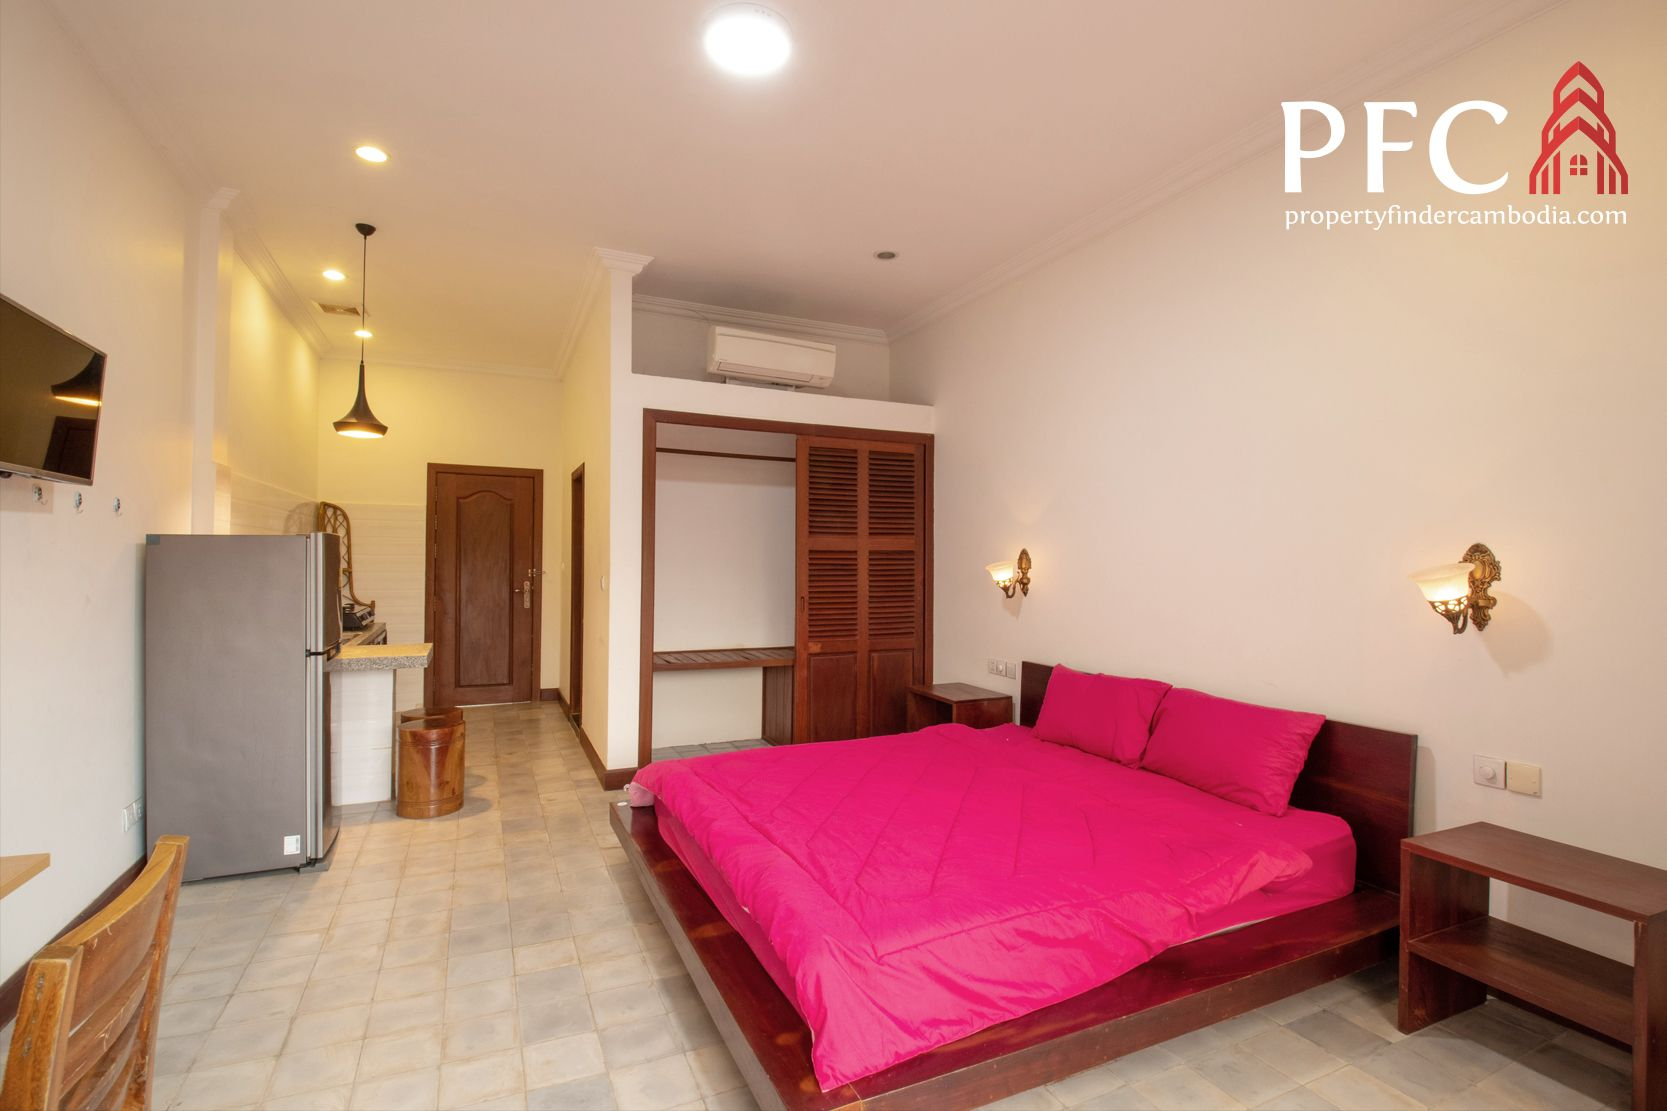 Studio Apartment For Rent With Images Apartments For Rent